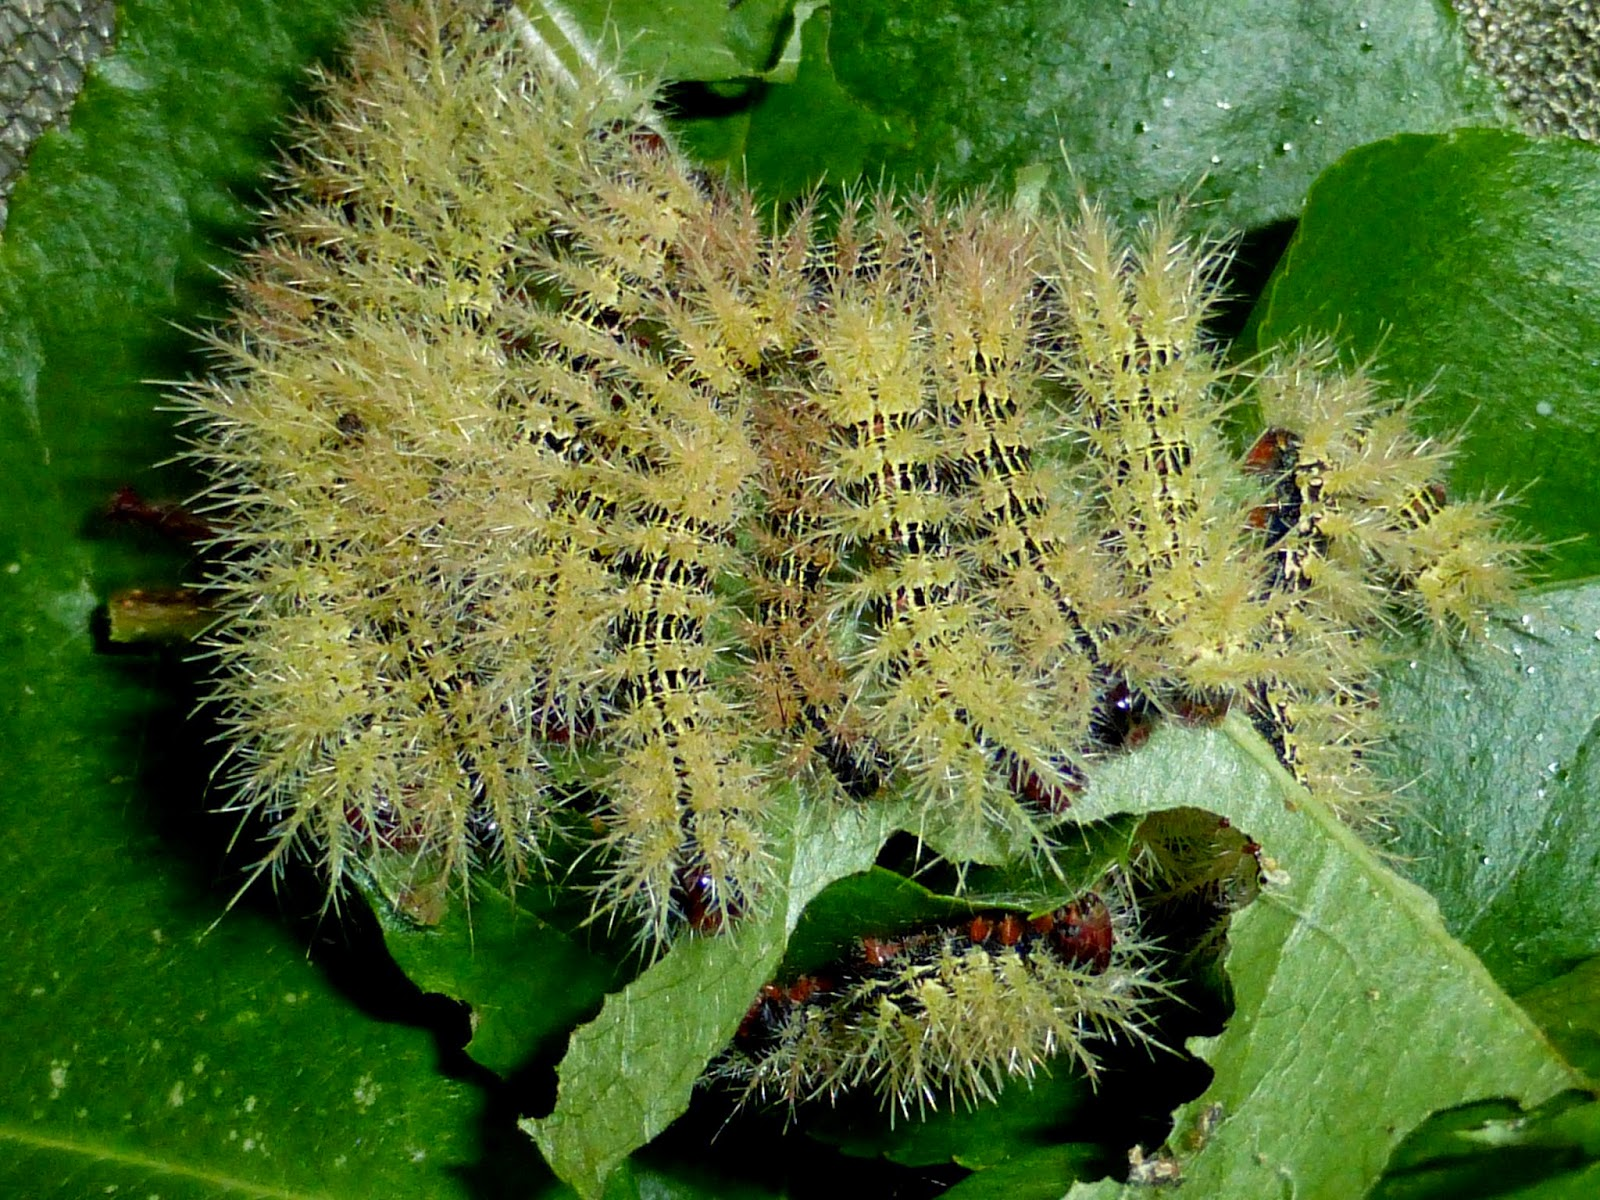 Automeris naranja caterpillars L4